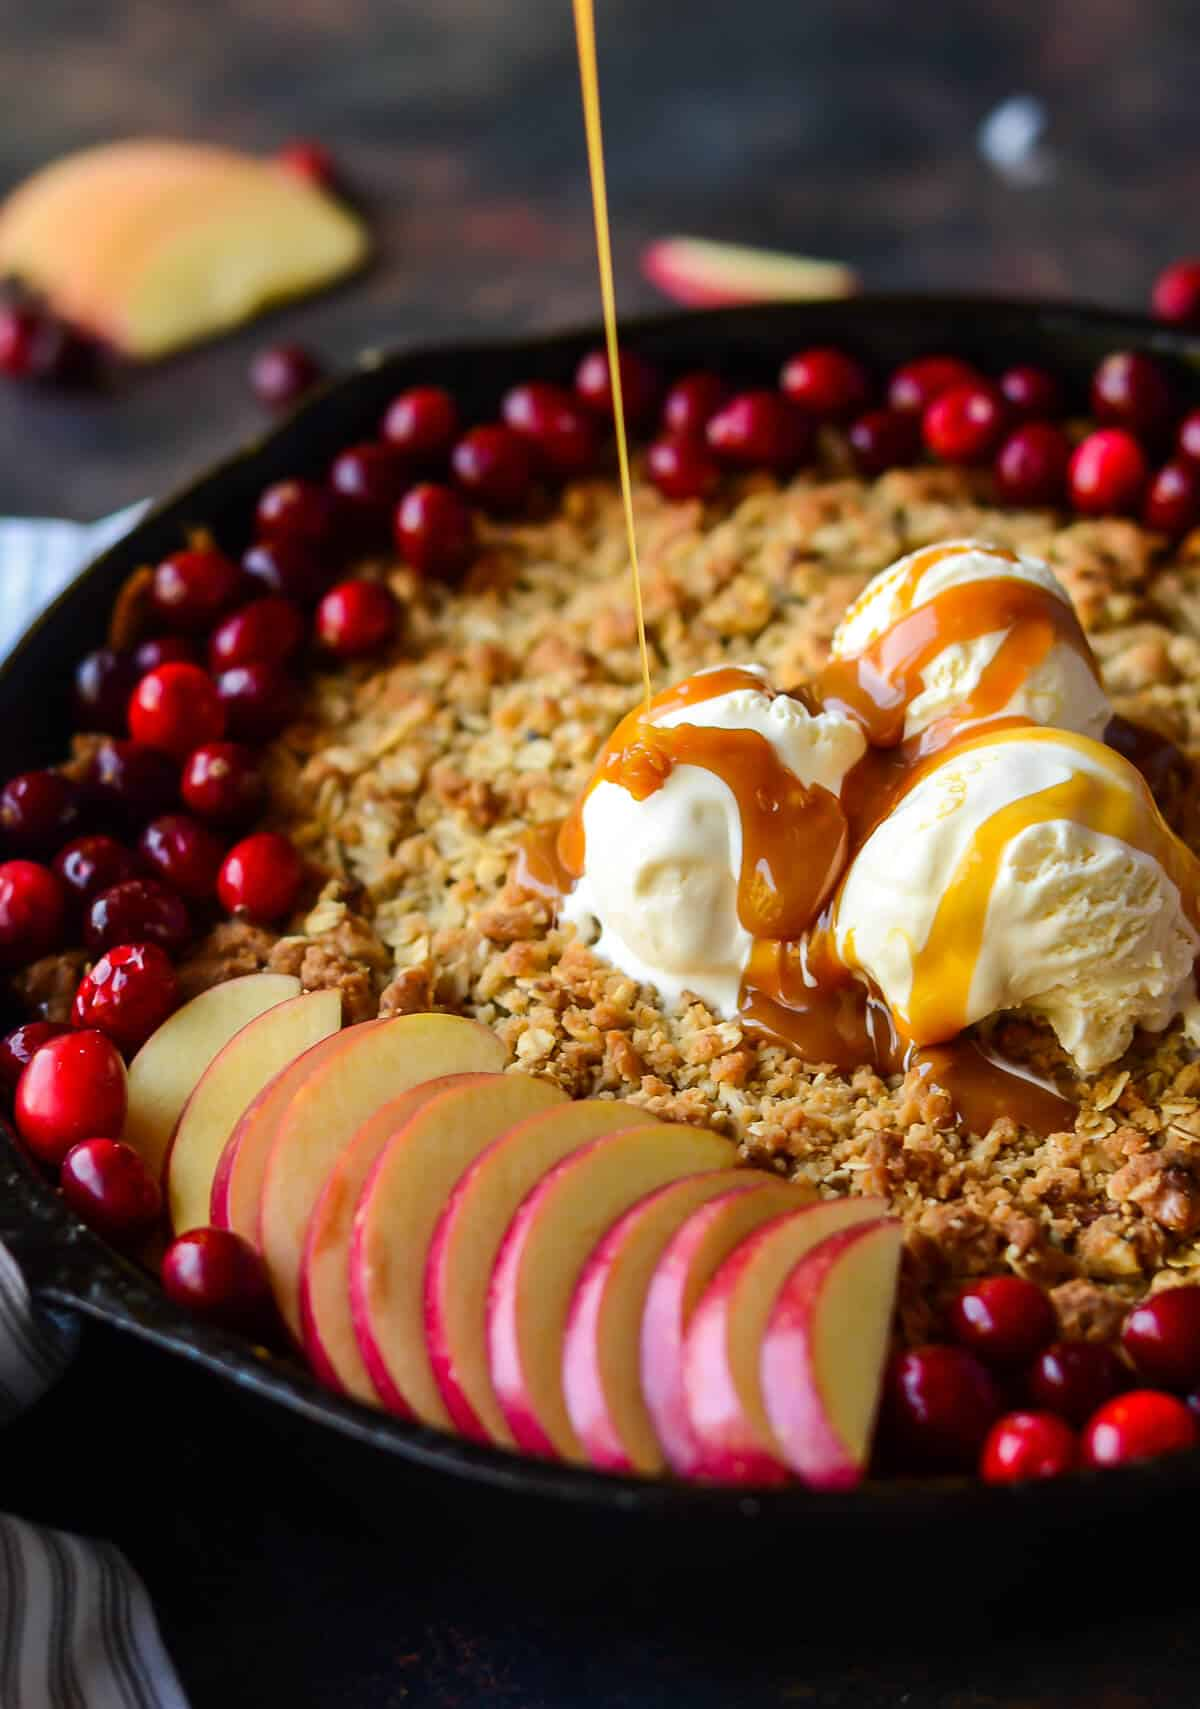 caramel sauce being drizzled over maple apple crisp topped with fresh cranberries, fresh apple slices and vanilla ice cream